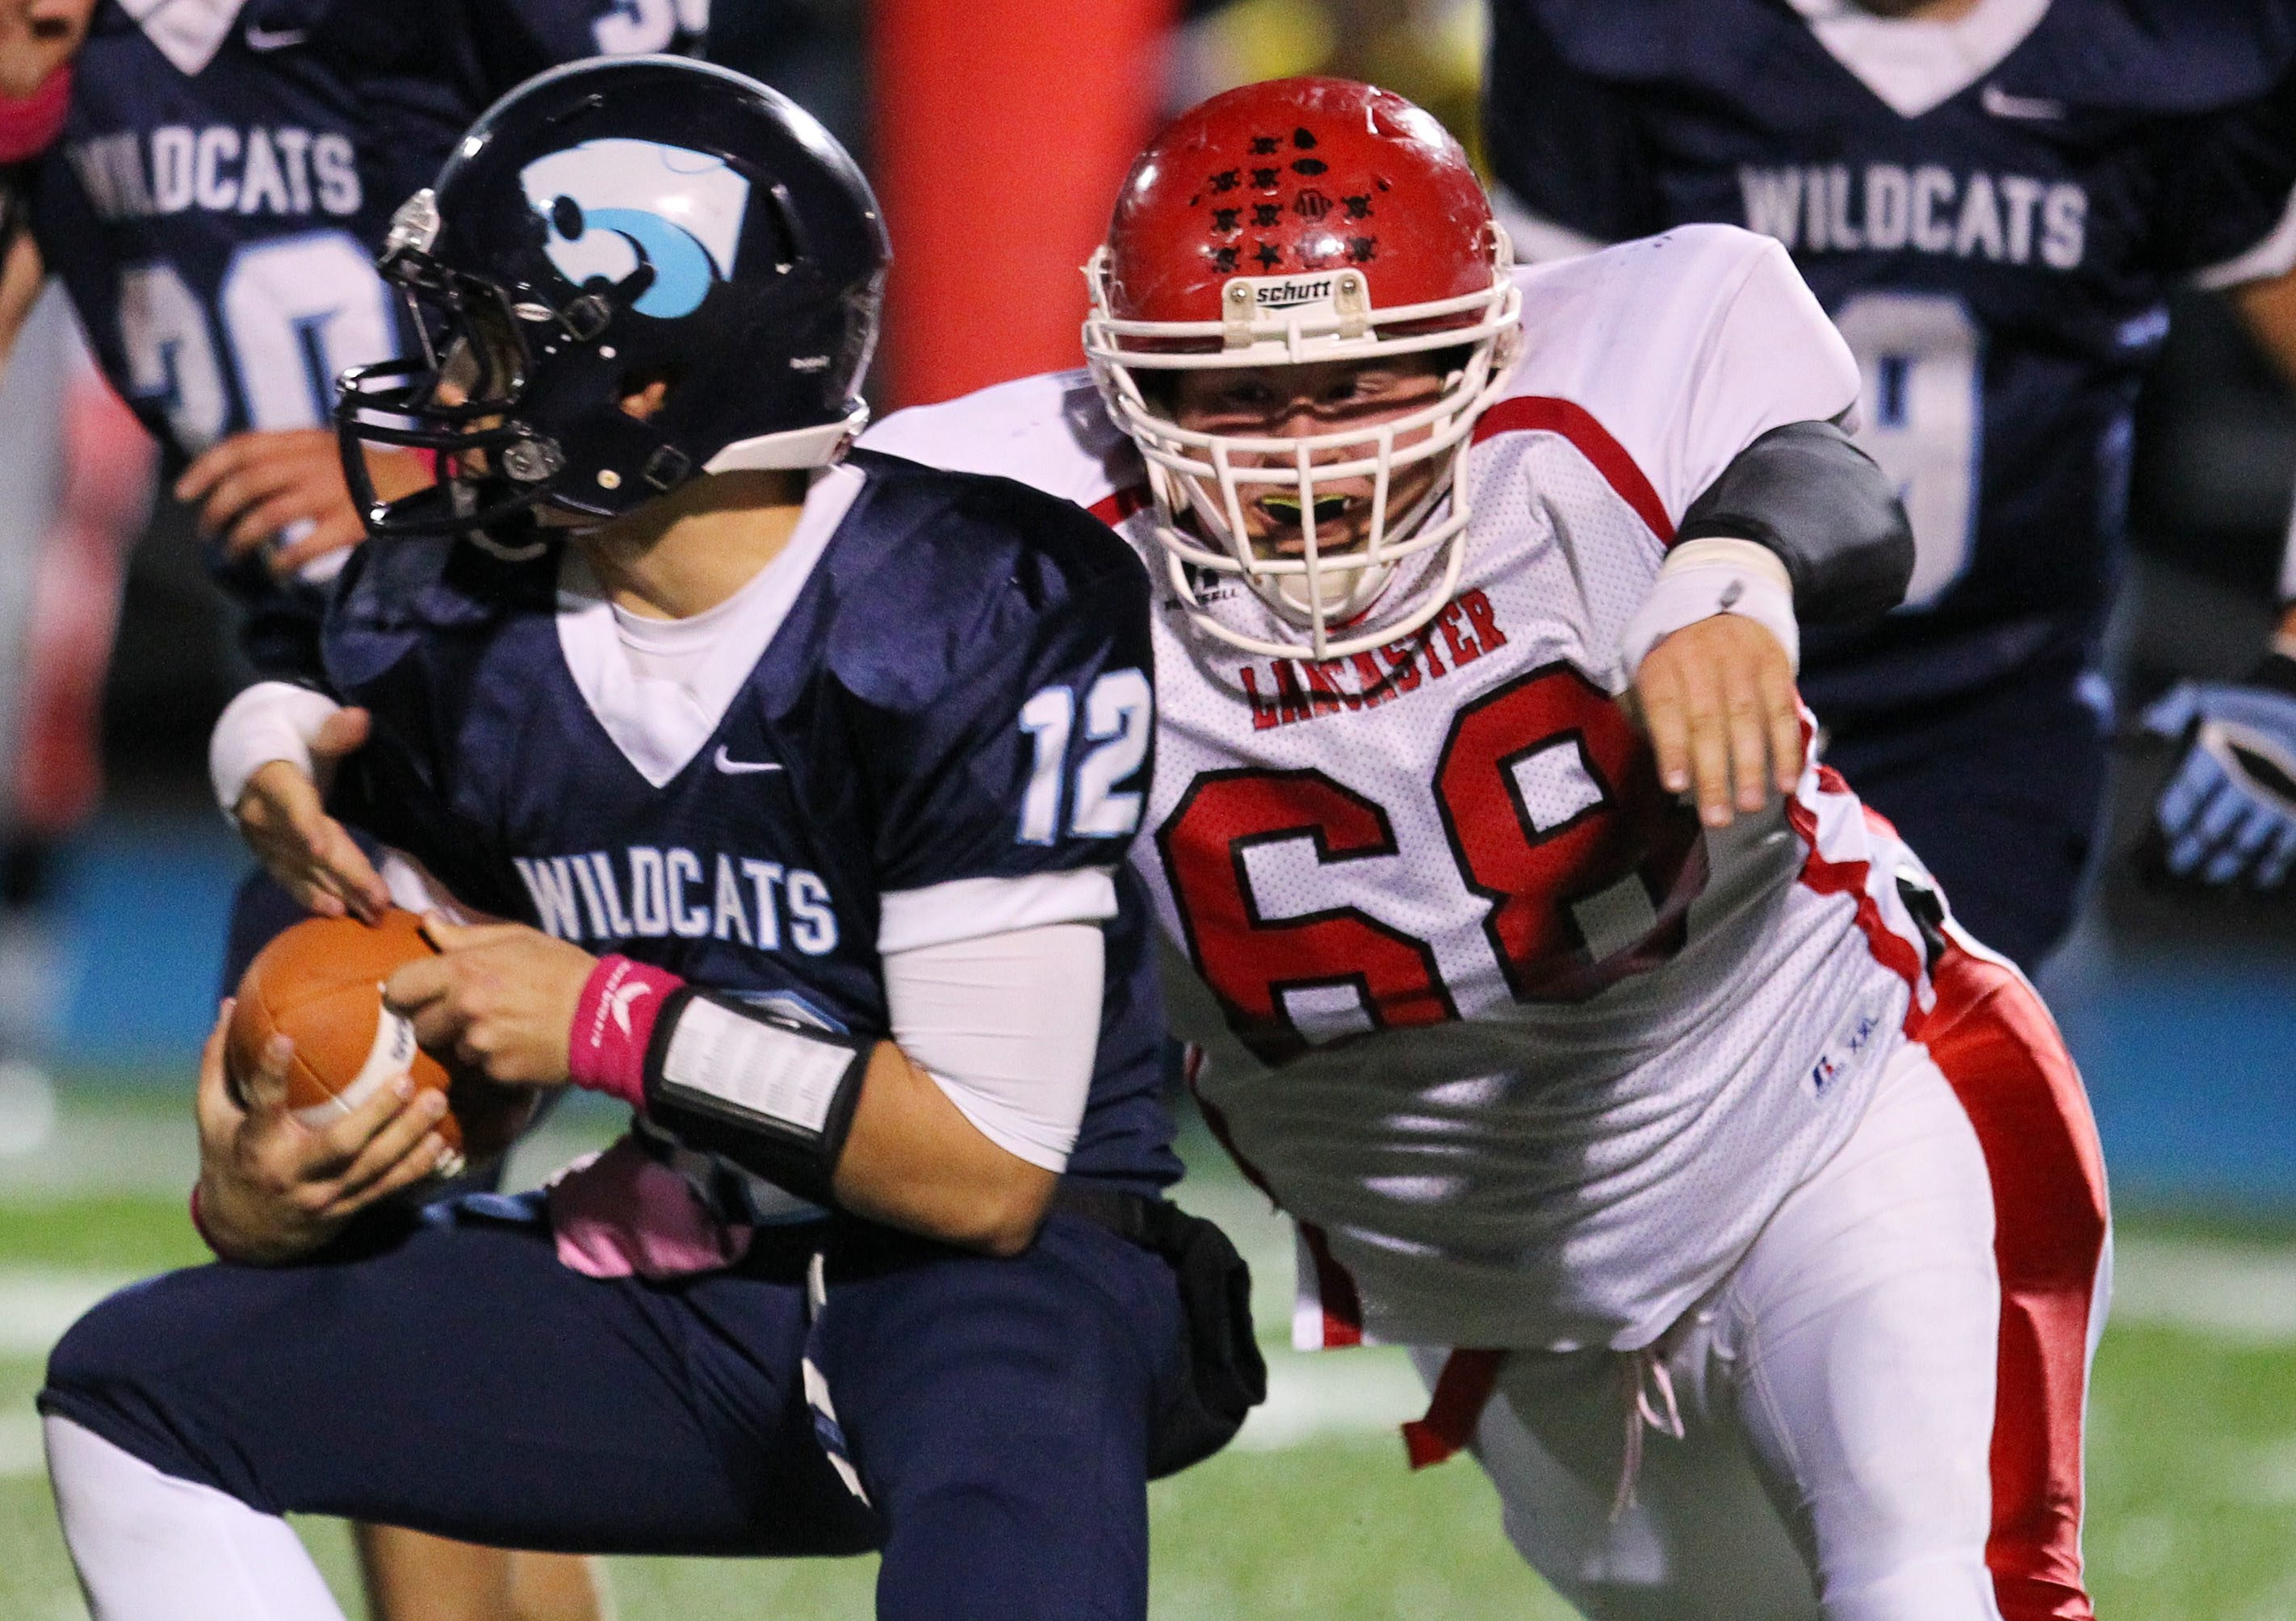 Lancaster's Zack Szarpa moves in to tackle Dylan Sekuterski of Depew during the first half. Lancaster beat its rival, 36-0, in the game at Depew.